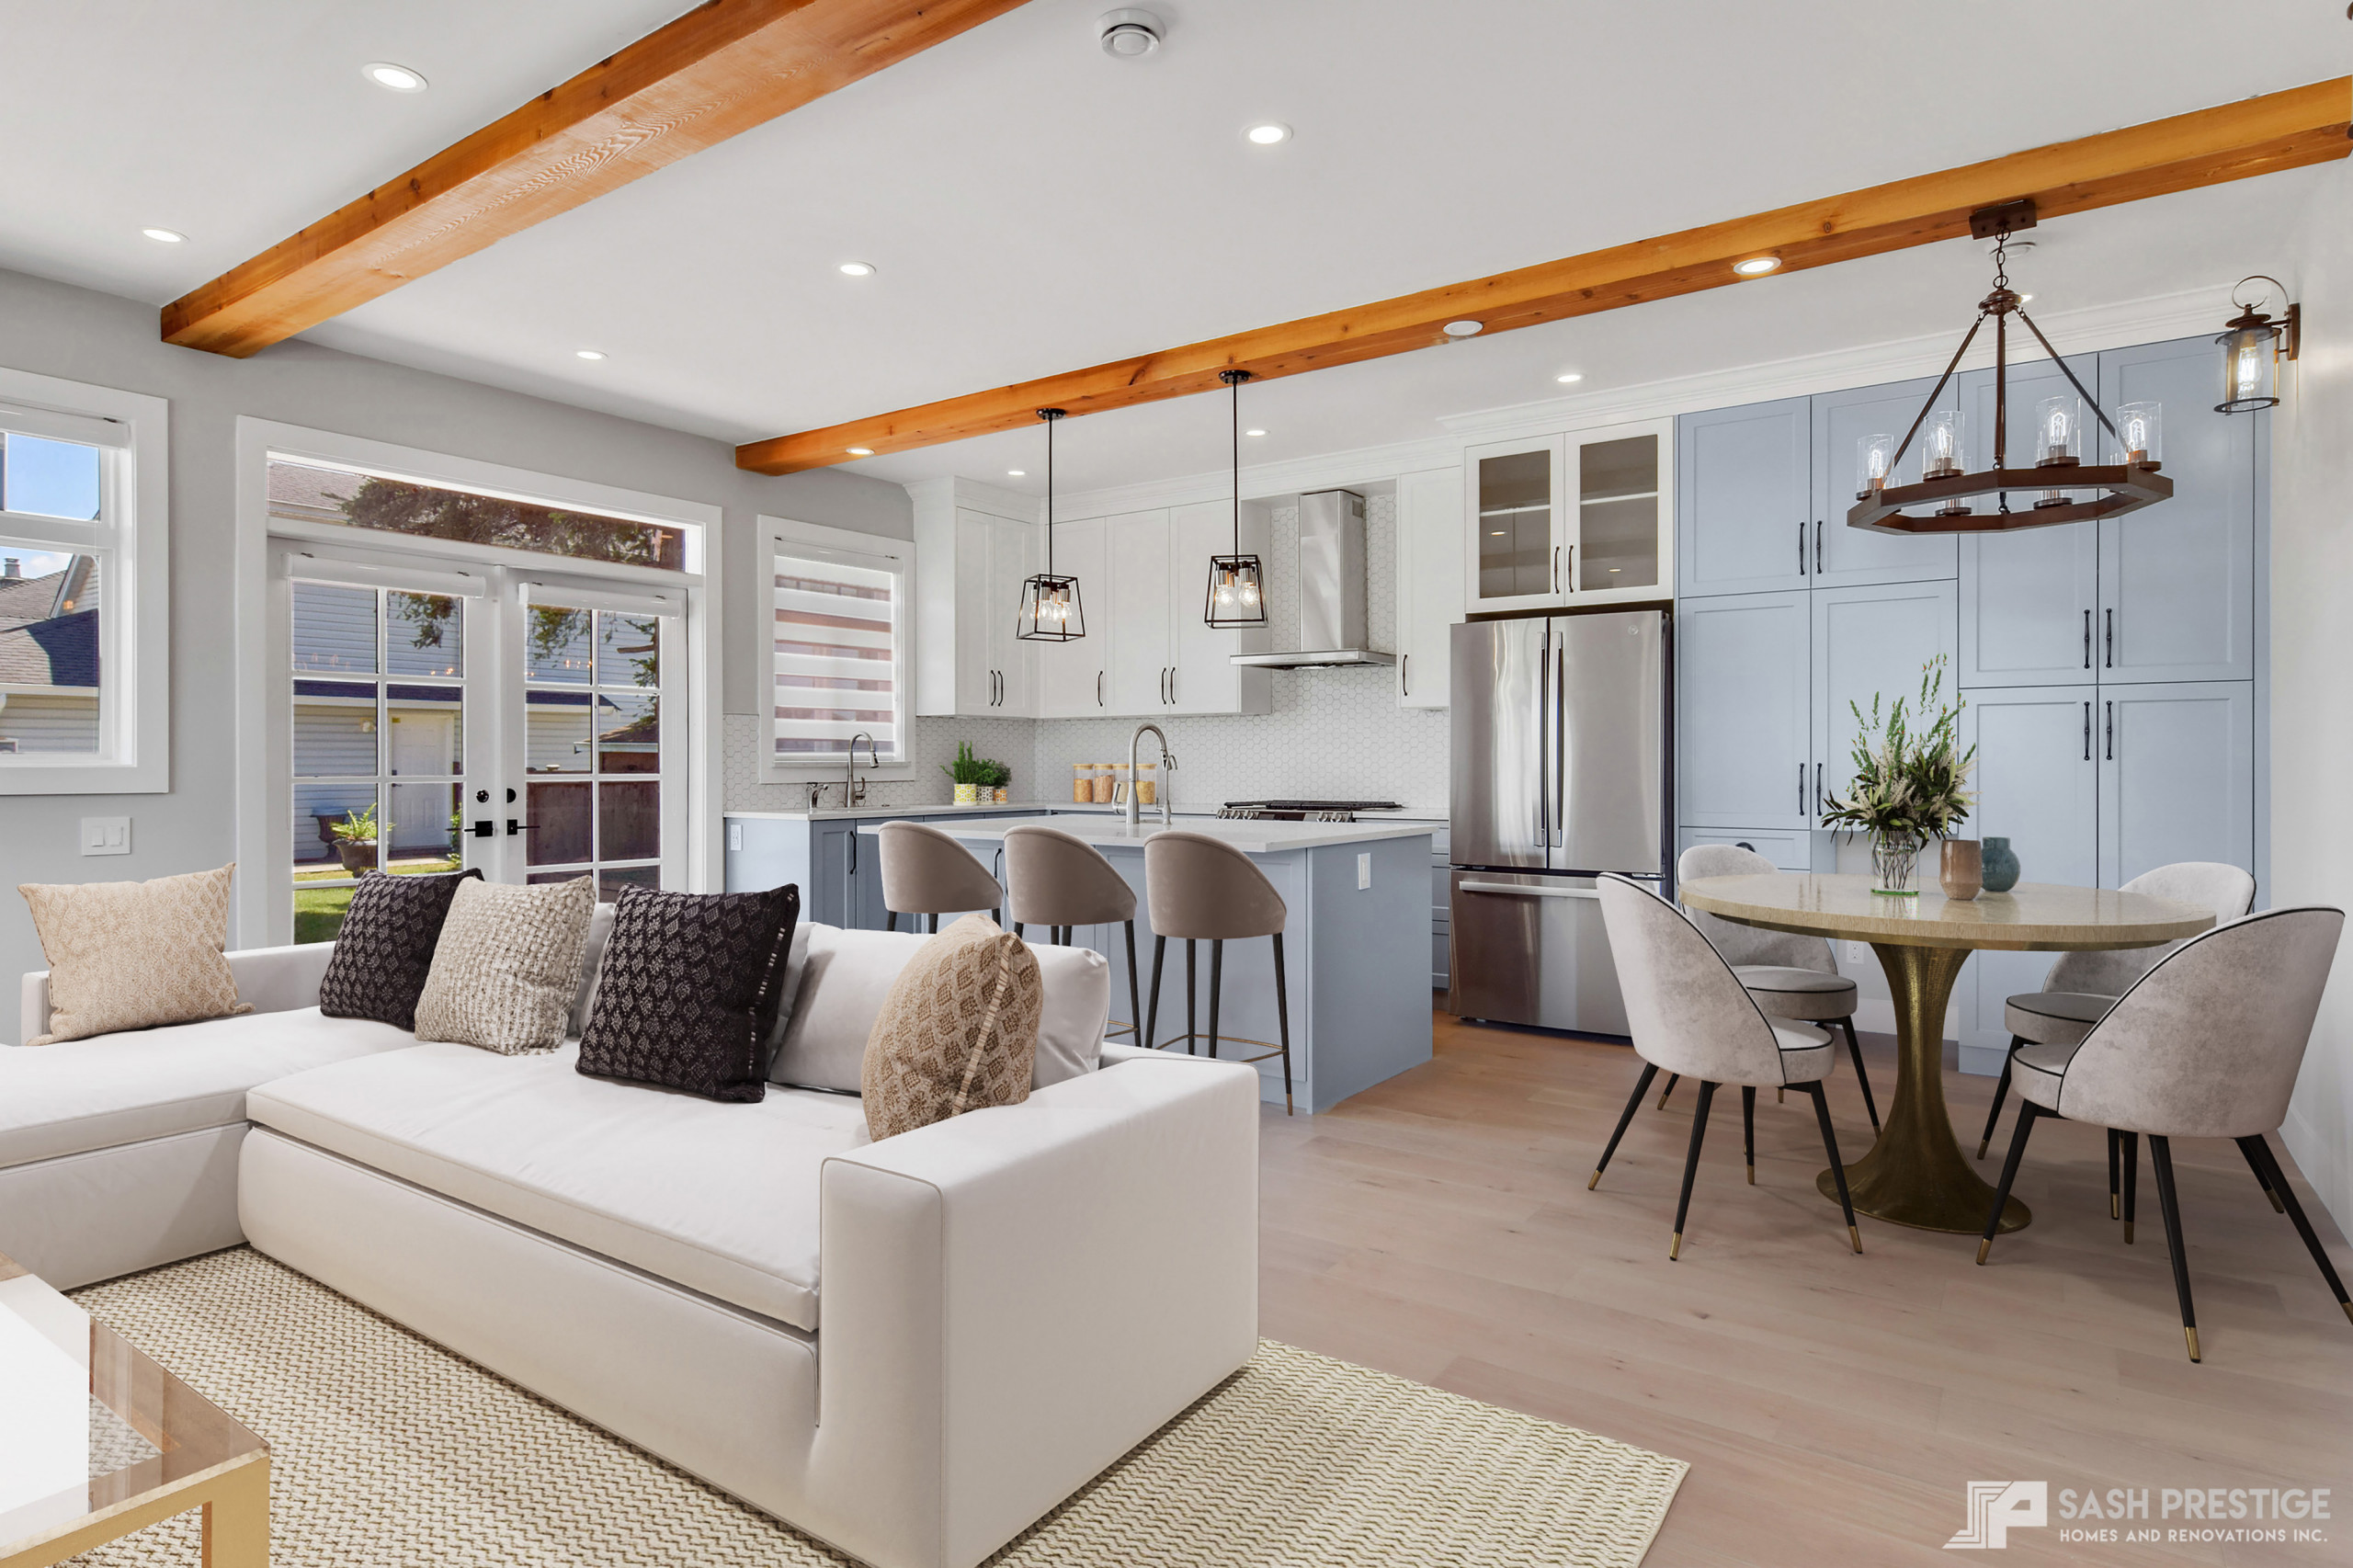 New Home for Young Family- Richmond, B.C.